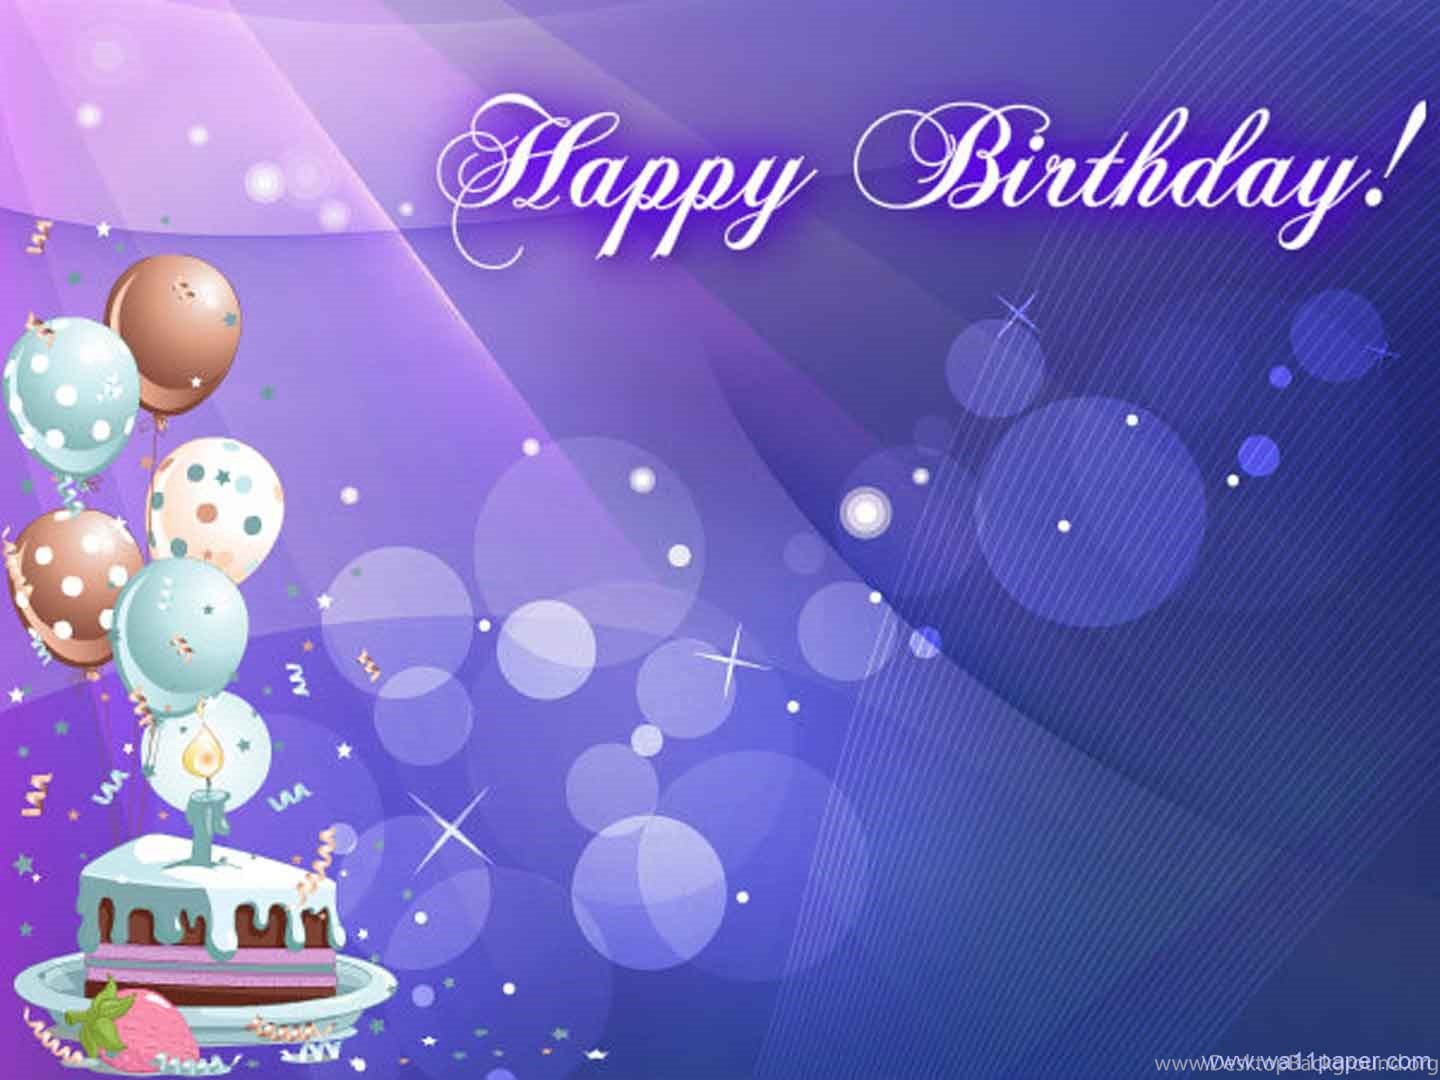 Happy Birthday Images For Men ~ Happy birthday background images for men celebrating cliparts